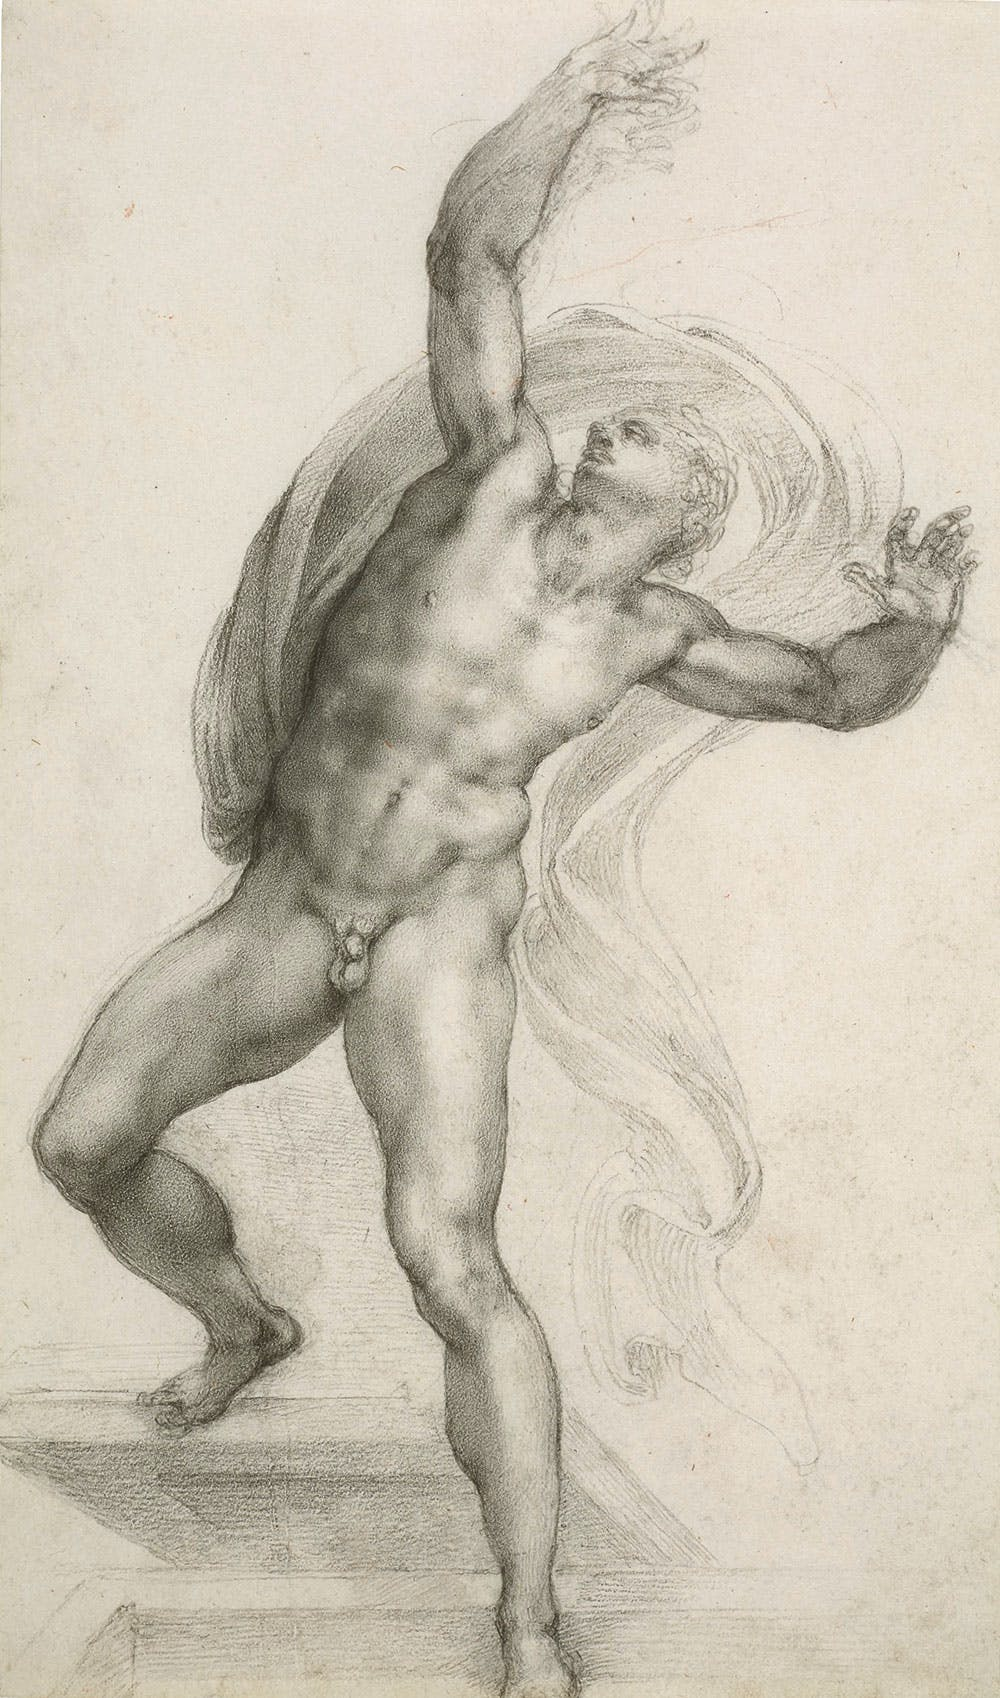 The Risen Christ (c. 1532–33), Michelangelo Buonarroti.